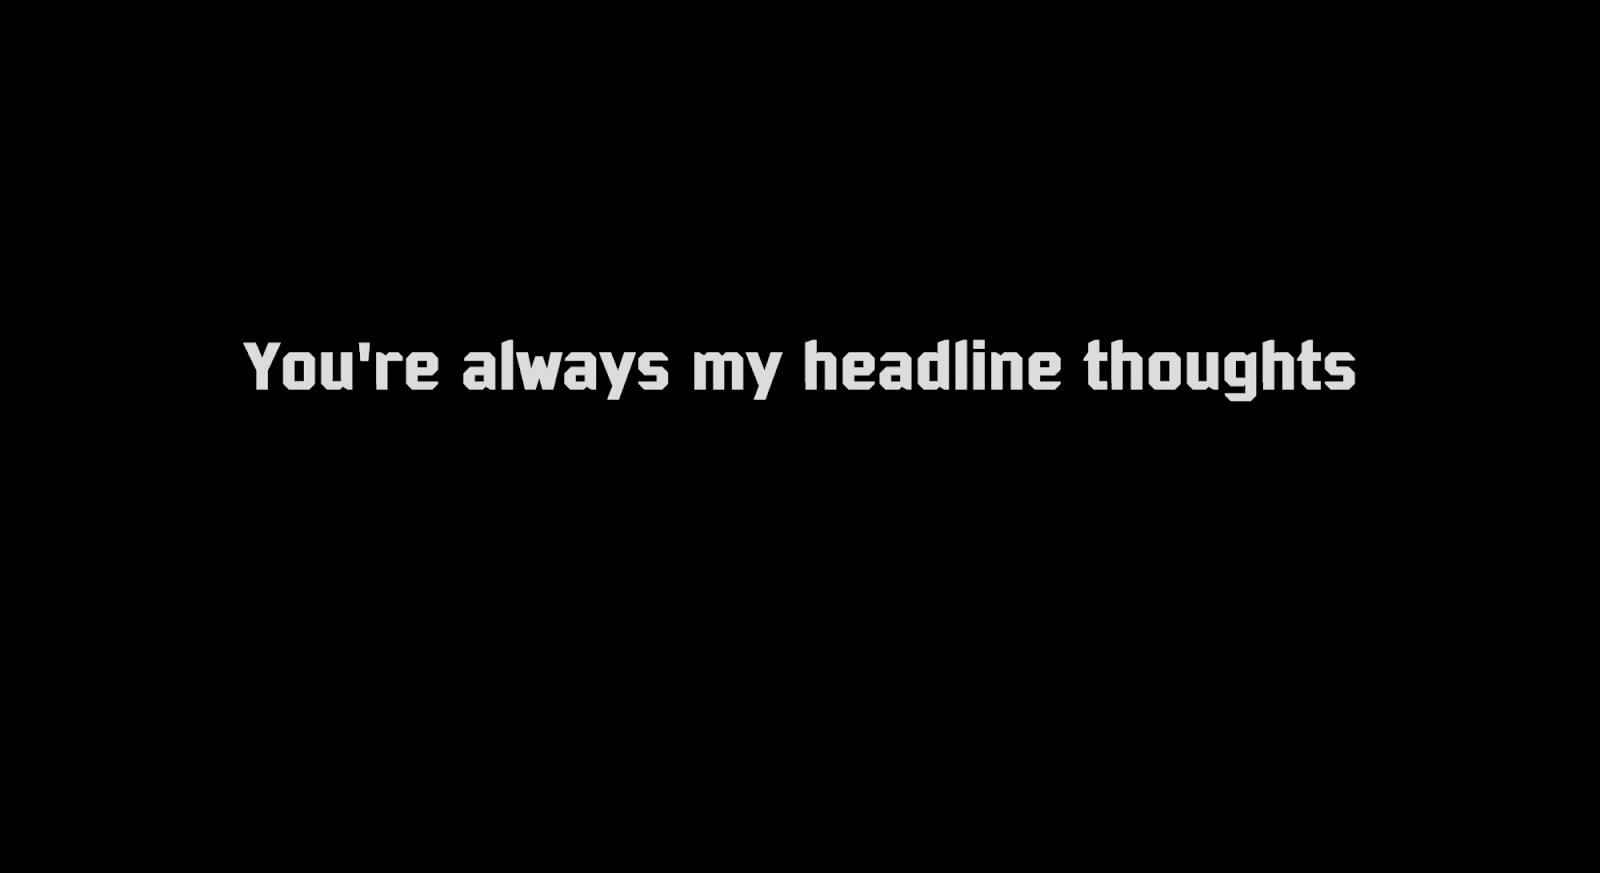 You're always my headline thoughts